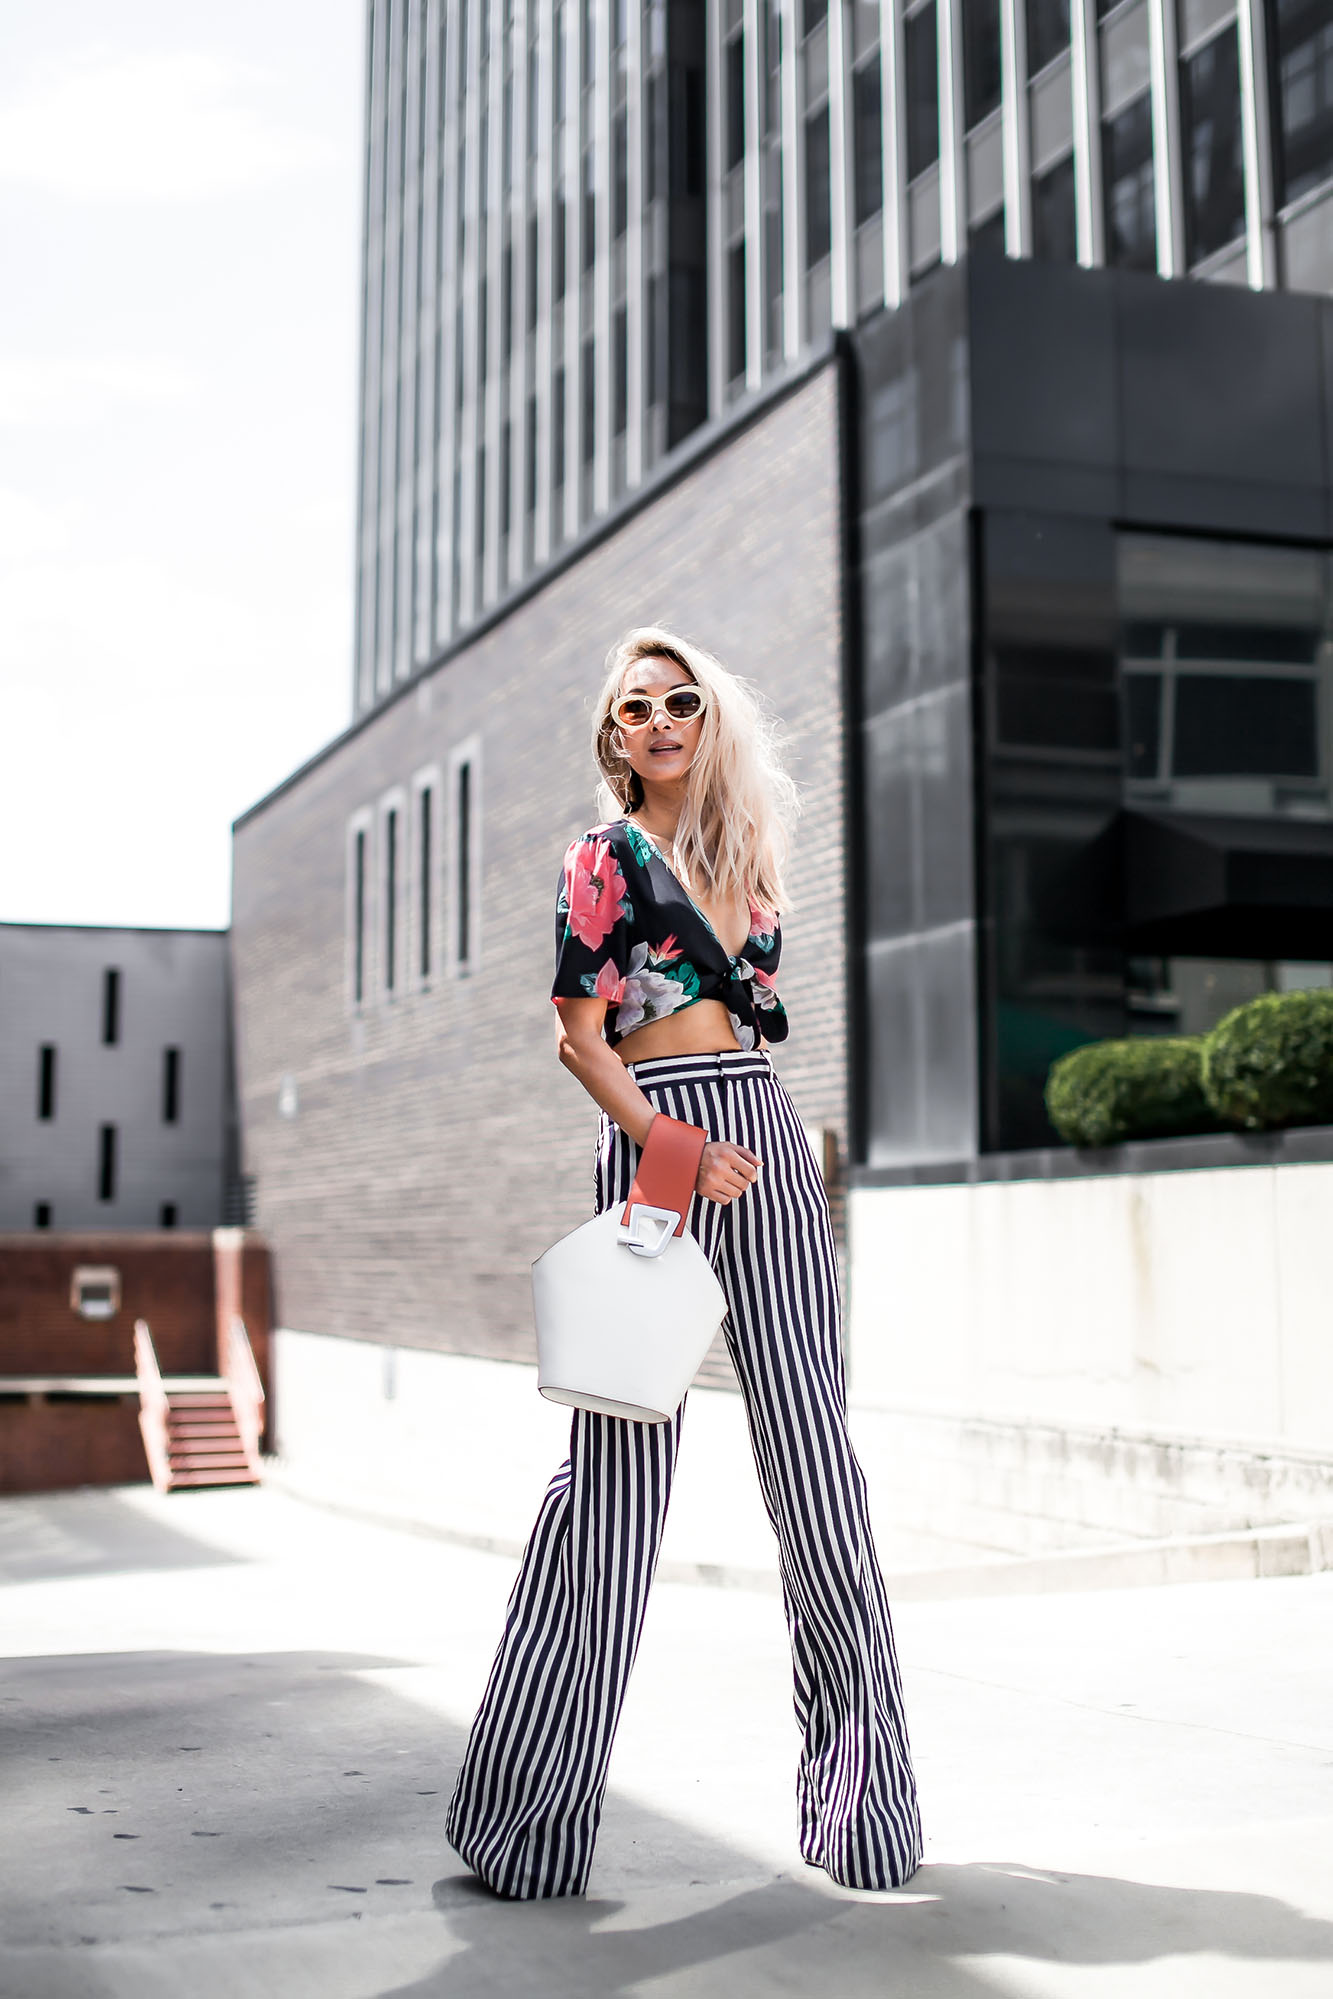 Anchyi Wei of fashion blogger Anchyi Adorned Street Style in Zara floral cropped top, striped pants, retro sunglsses and Danse Lente bucket bag.